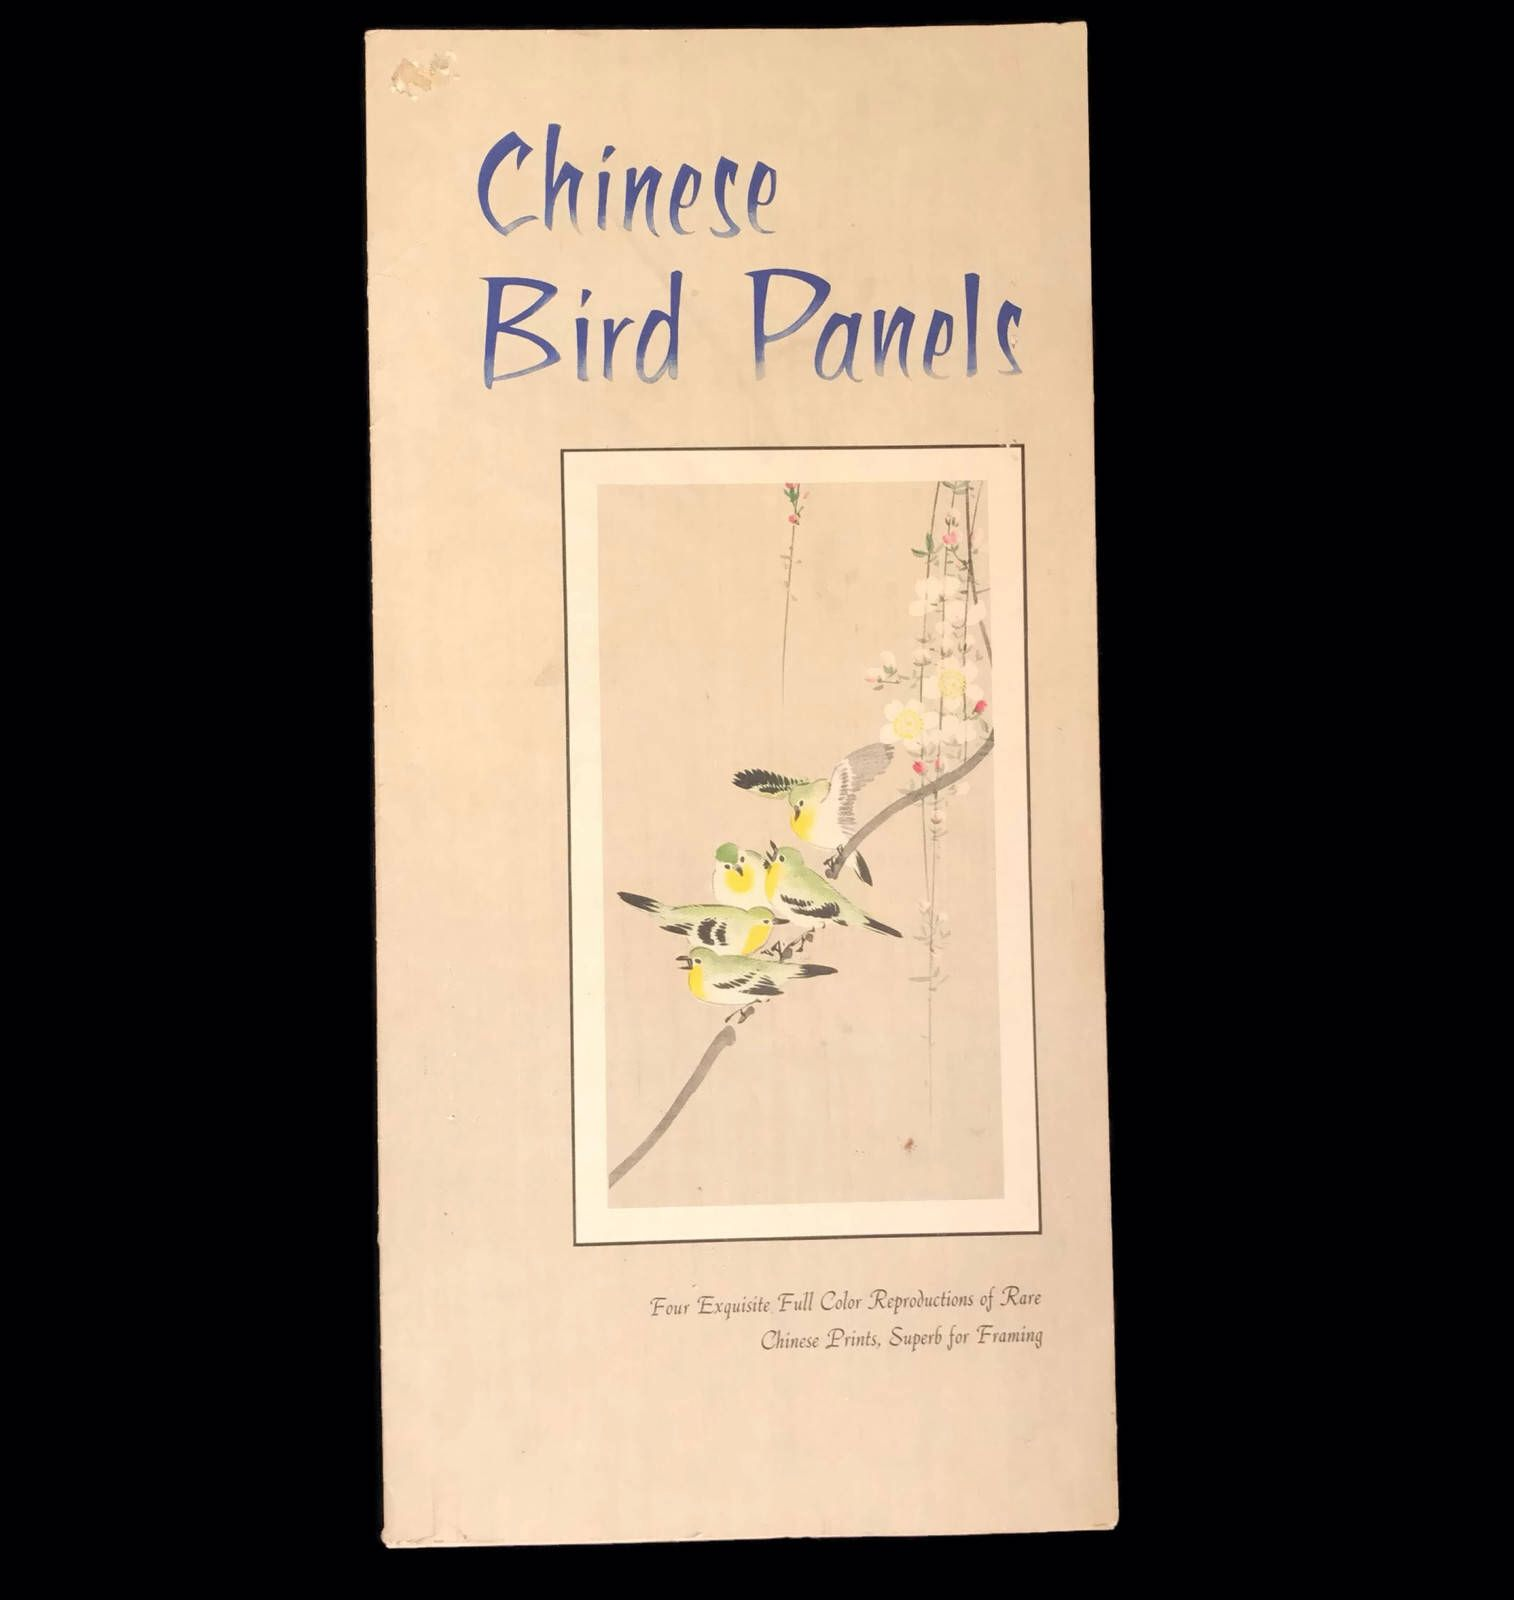 Vintage 1950s Prints Chinese Bird Panels 1958 Large Suitable for ...